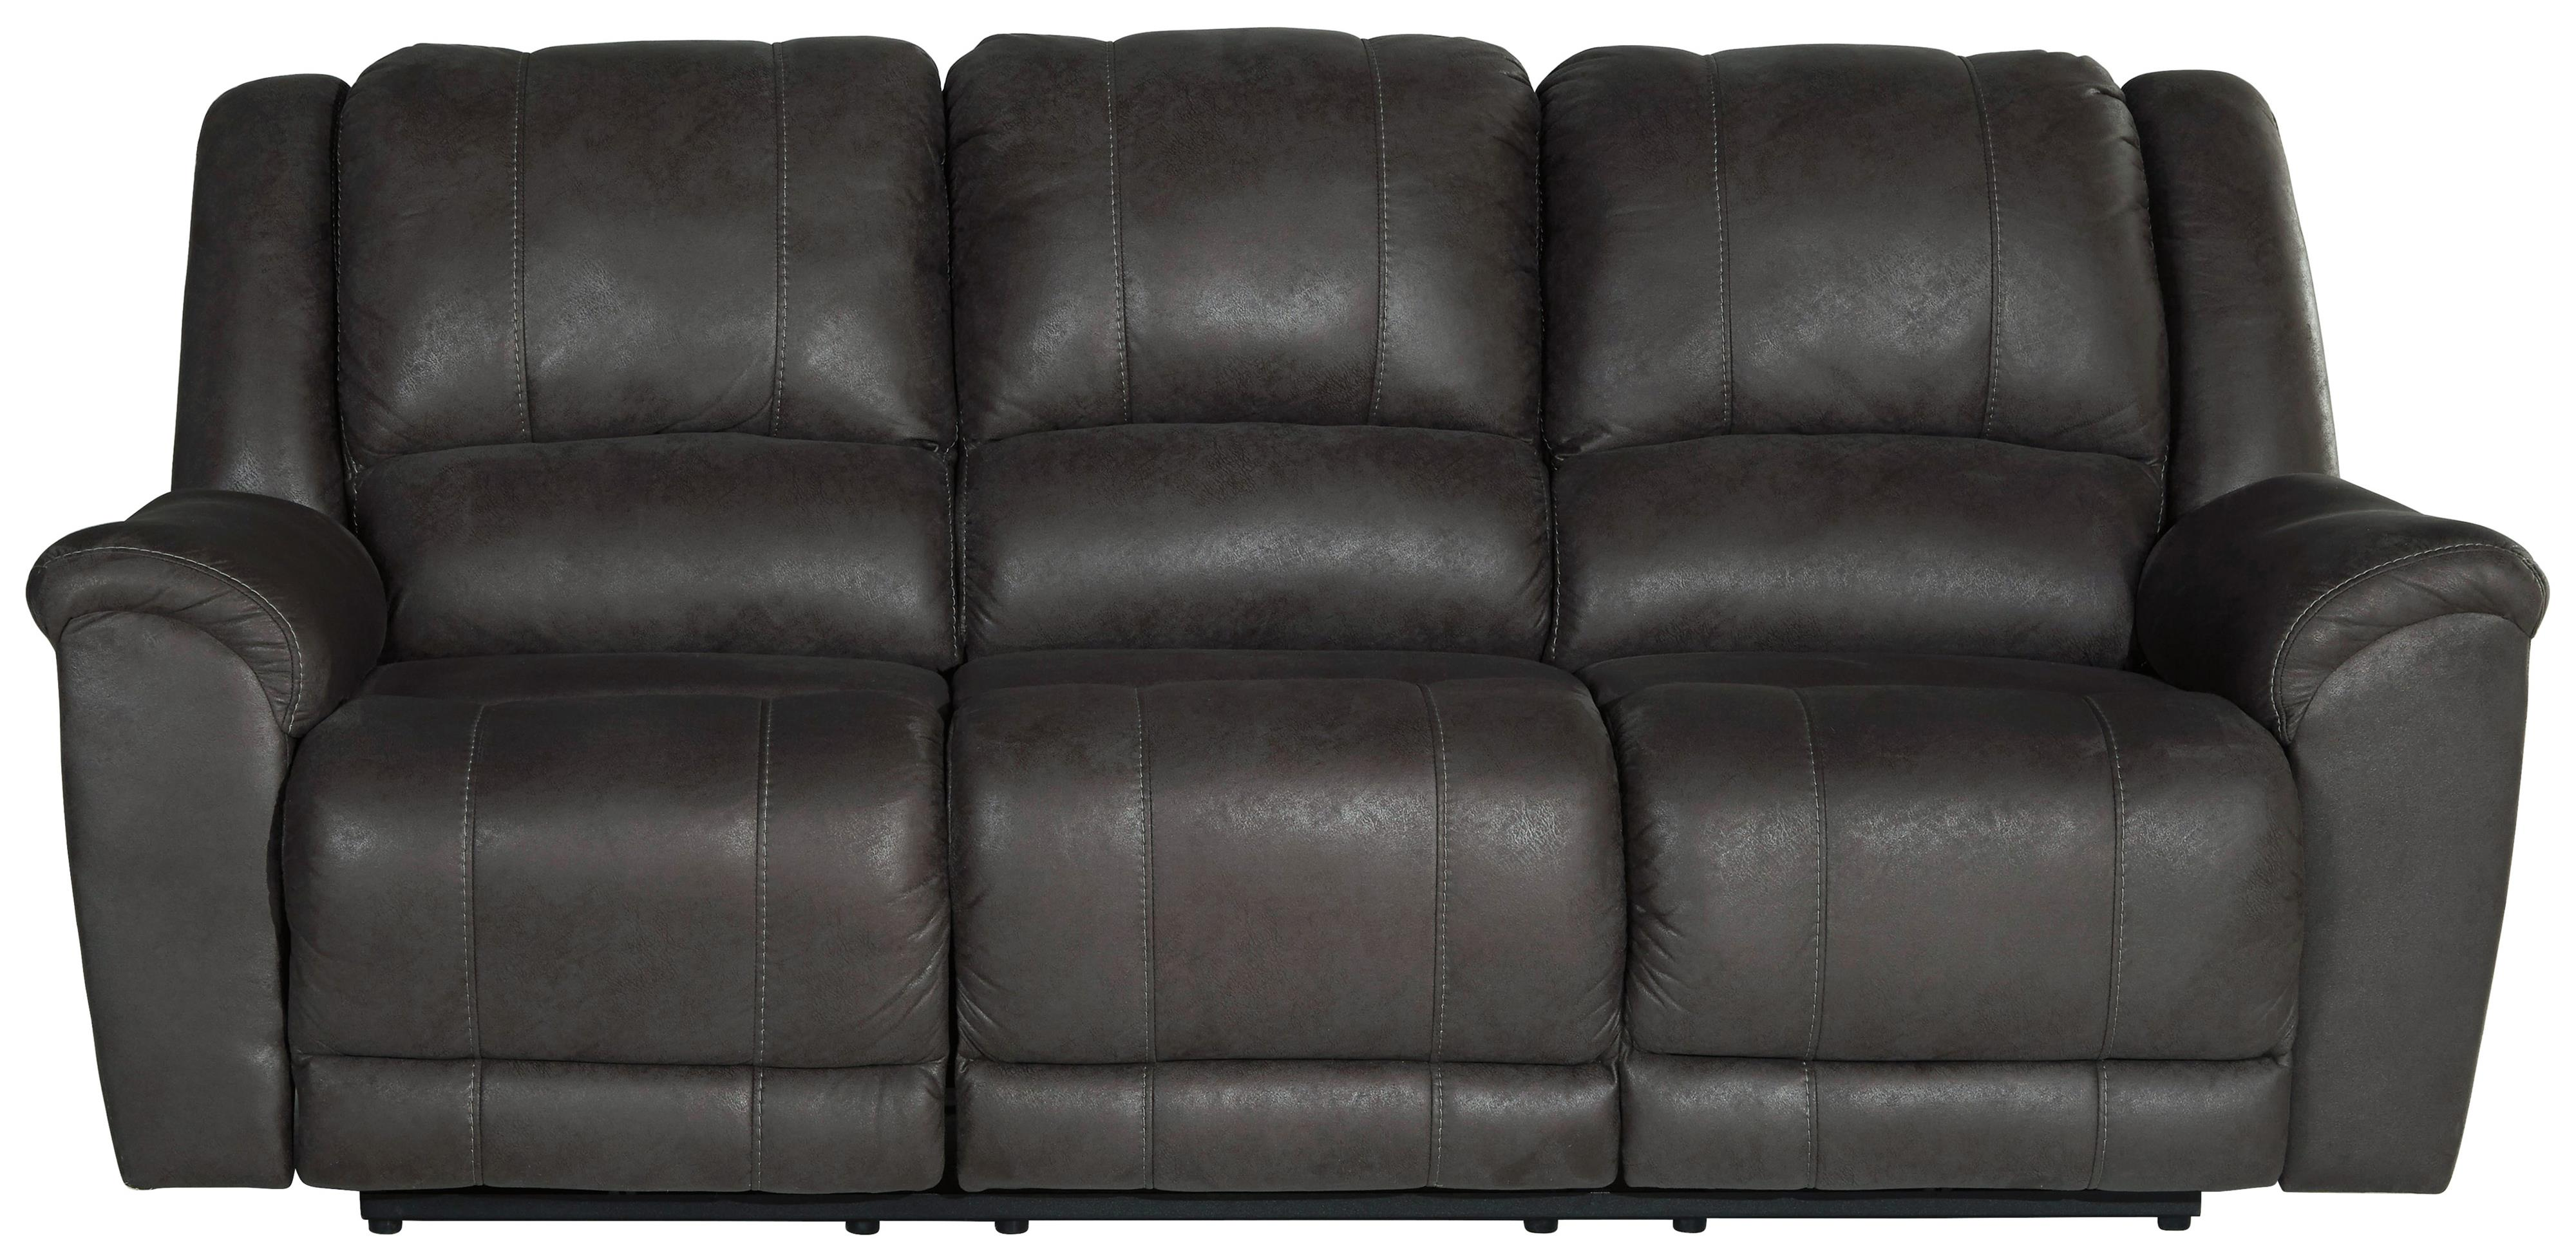 Benchcraft Niarobi Reclining Sofa - Item Number: 4060088